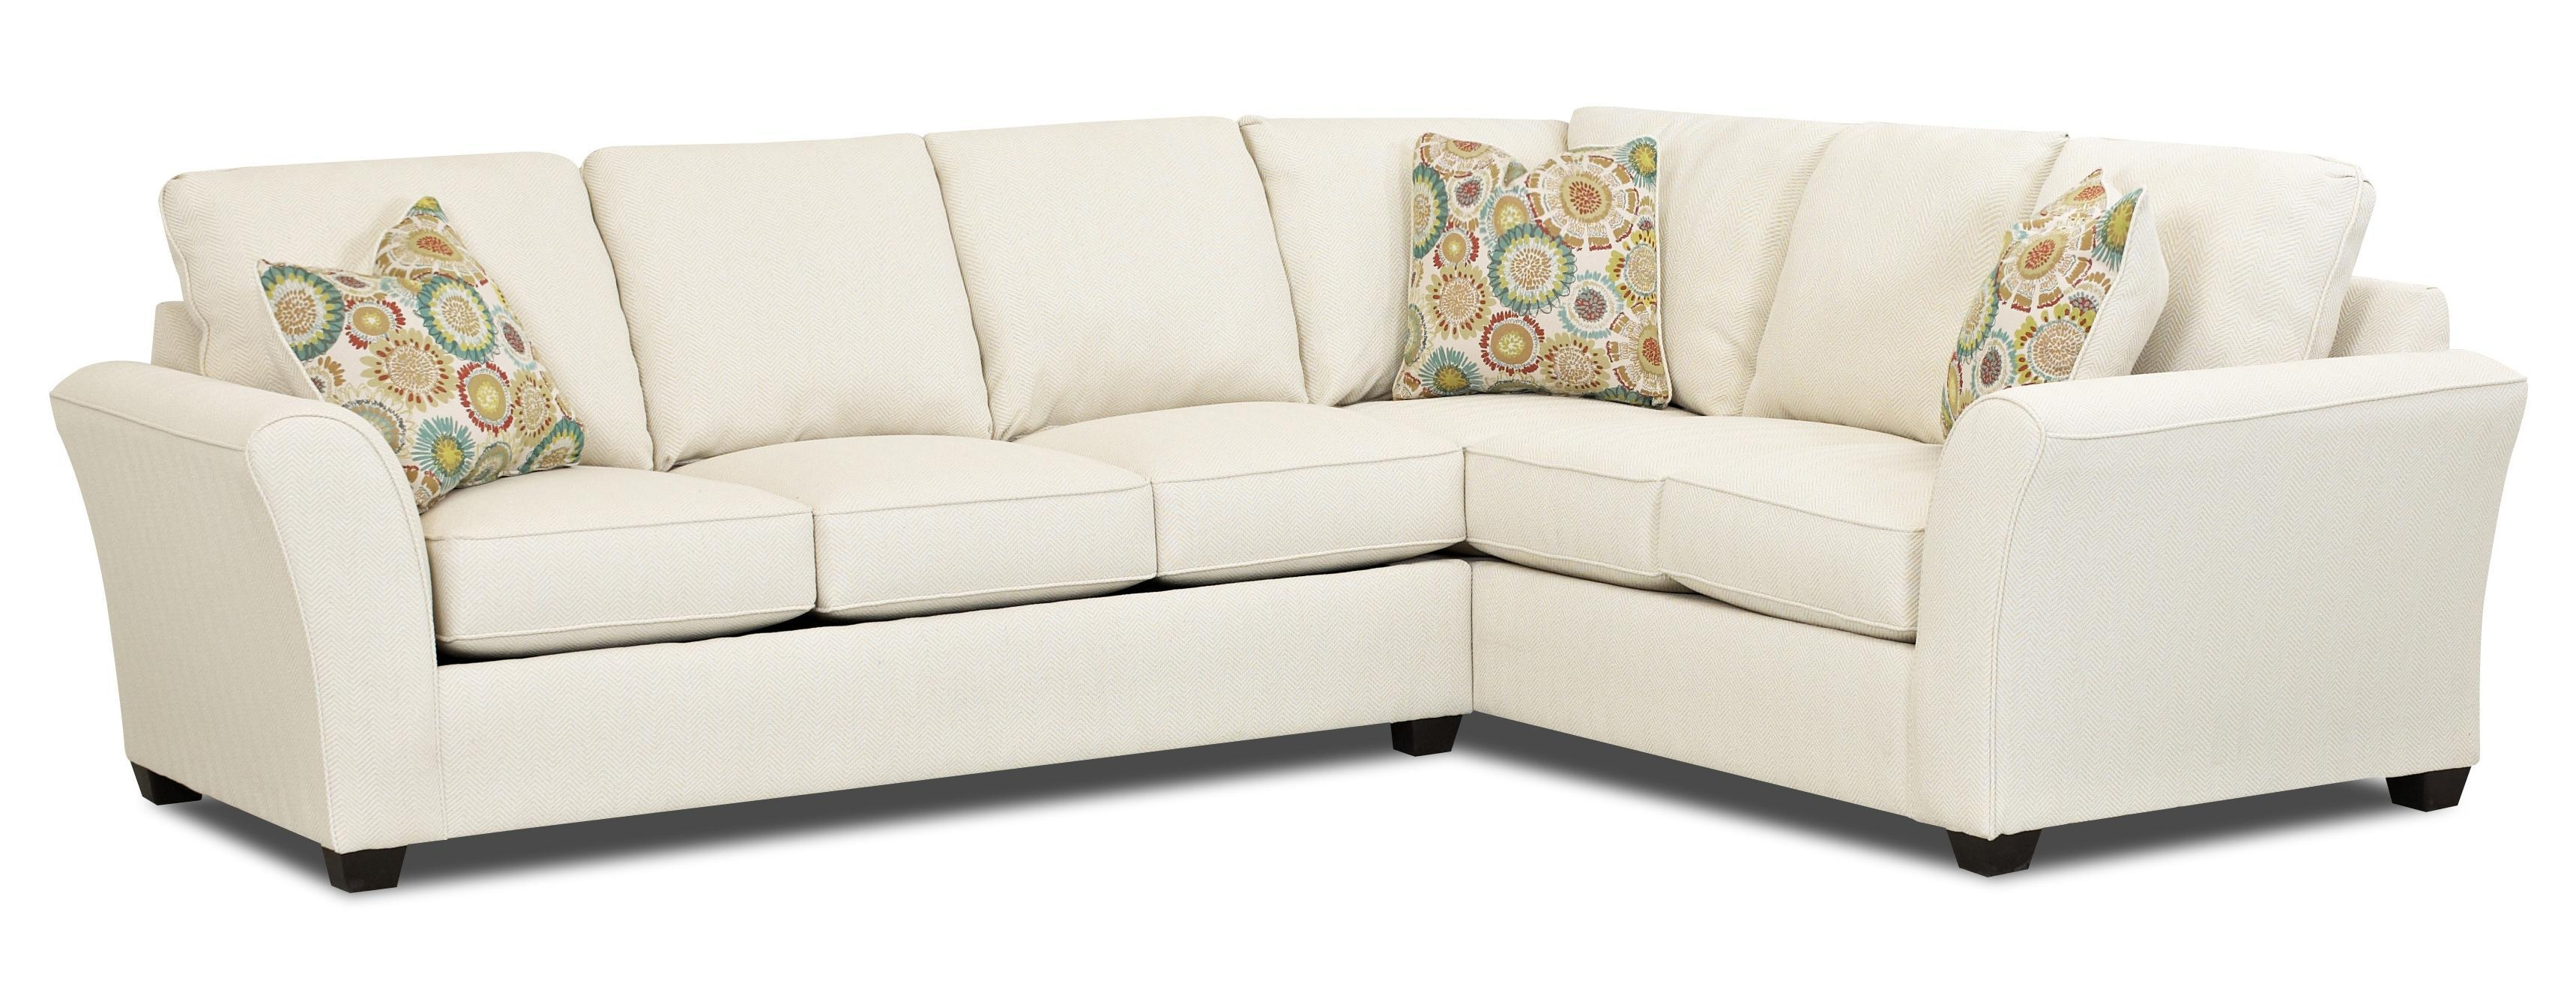 Klaussner Sedgewick Transitional 2 Piece Sectional Sleeper Sofa Regarding Sectional Sleepers (View 4 of 20)